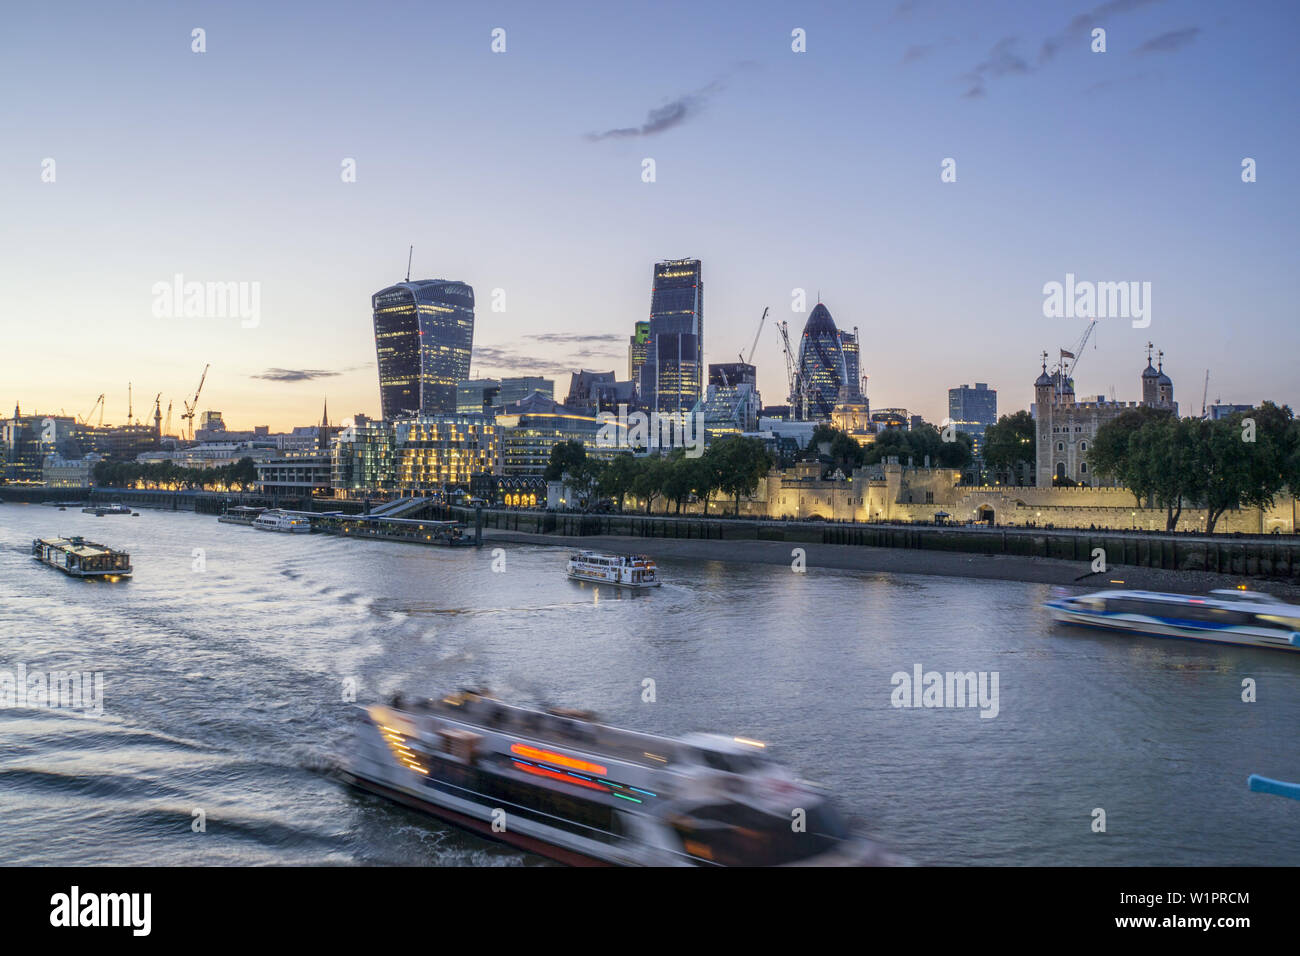 City of London, Financial district, office buildings in the City of London, River Thames at Twilight - Stock Image